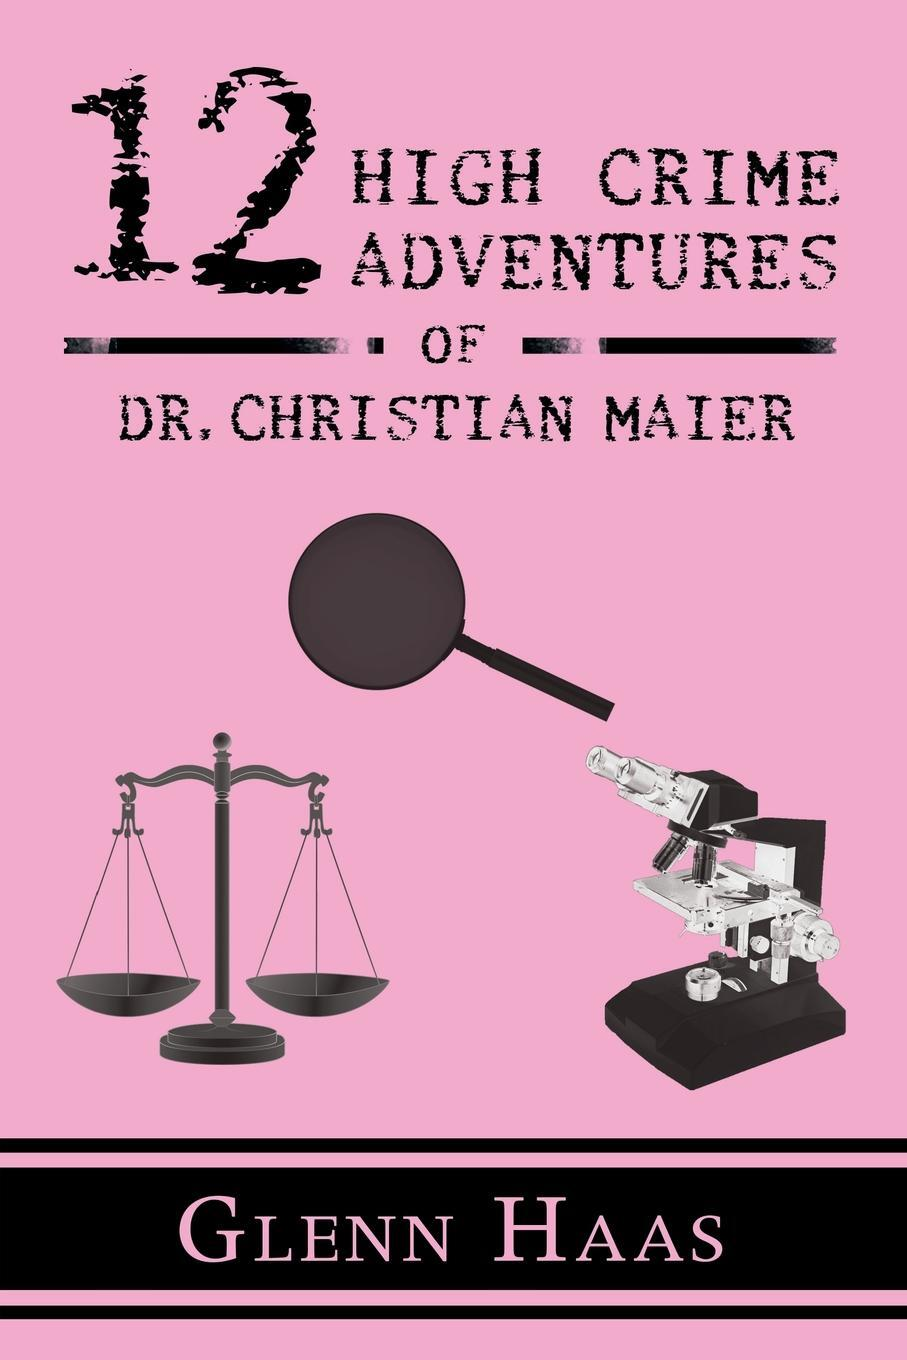 Glenn Haas. 12 High Crime Adventures of Dr. Christian Maier. America's First Forensic Detective